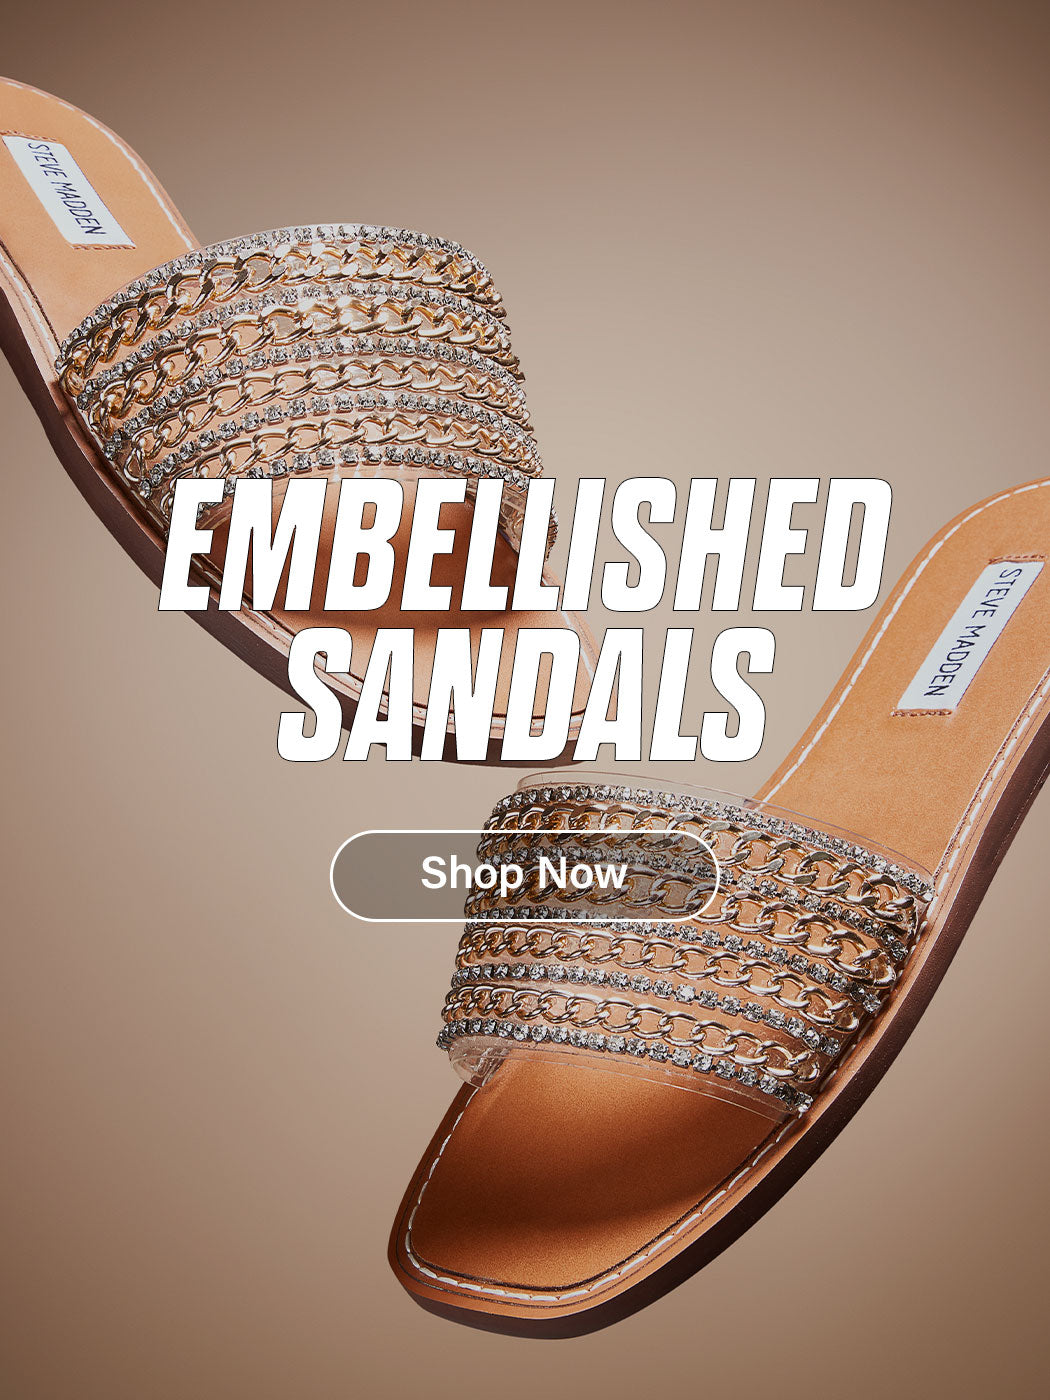 EMBELLISHED SANDALS - SHOP NOW EMBELLISHED SANDALS - SHOP NOW